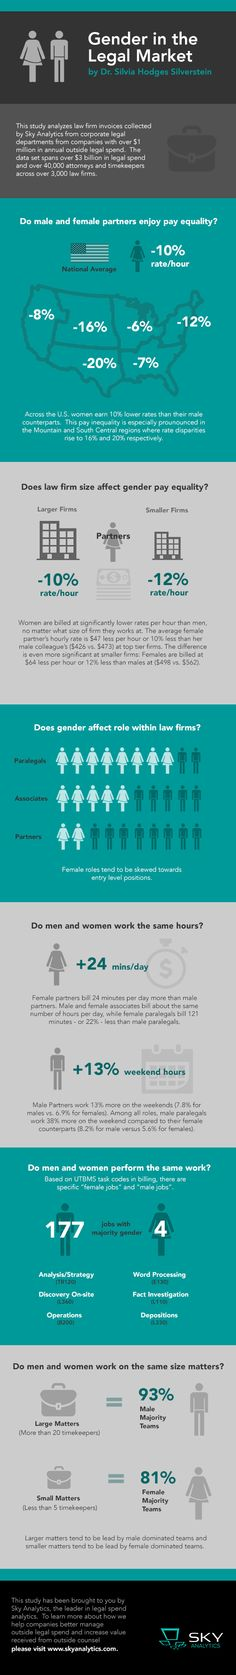 Gender Inequality in the Legal Market